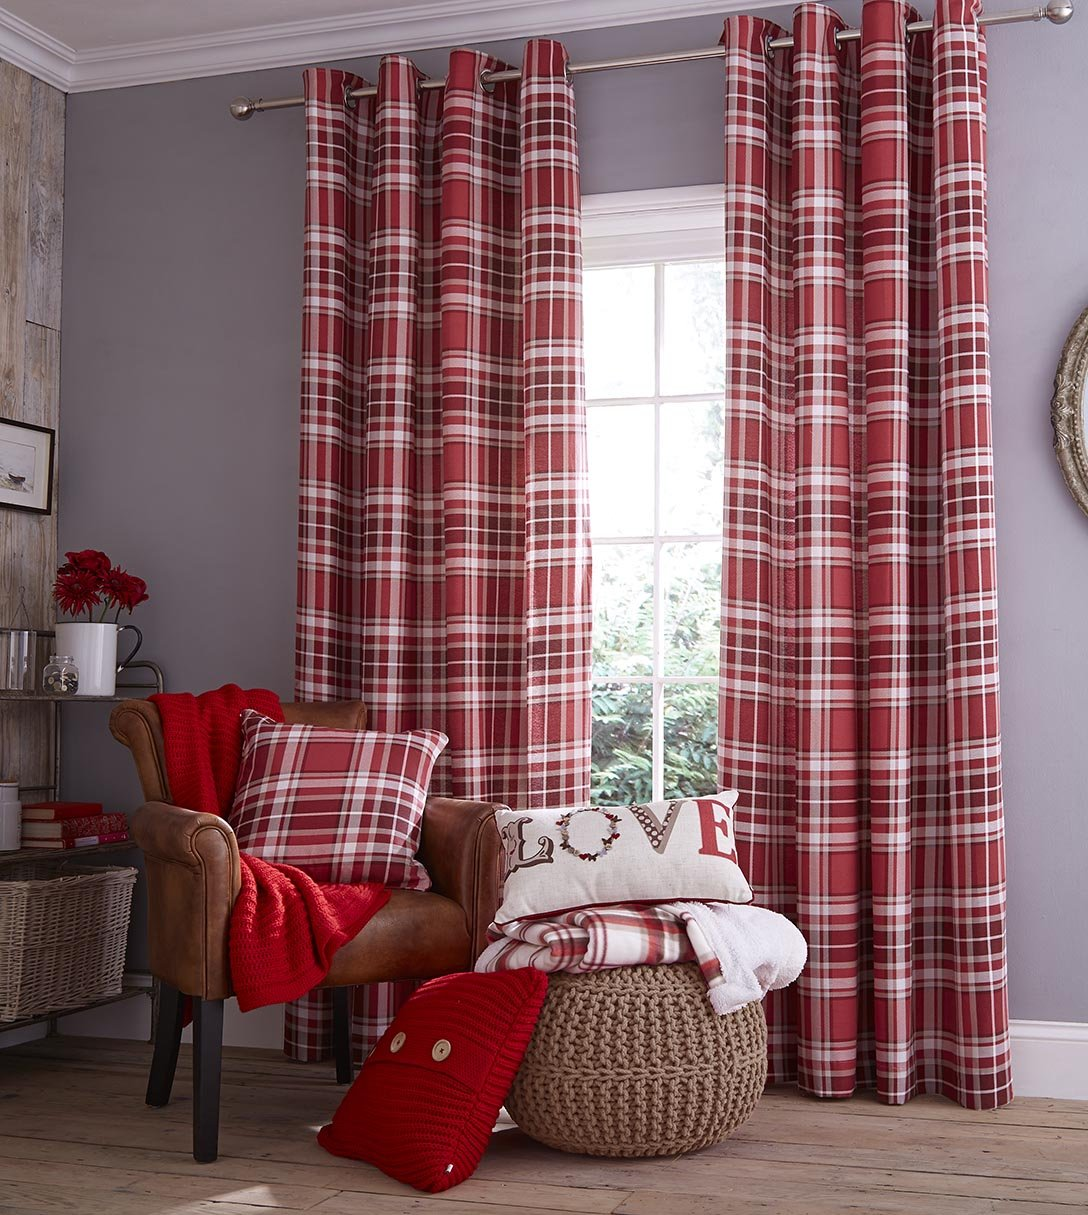 Red patterned curtains living room - Catherine Lansfield Twill Check Curtains 90x90 Red Amazoncouk Kitchen U0026 Home